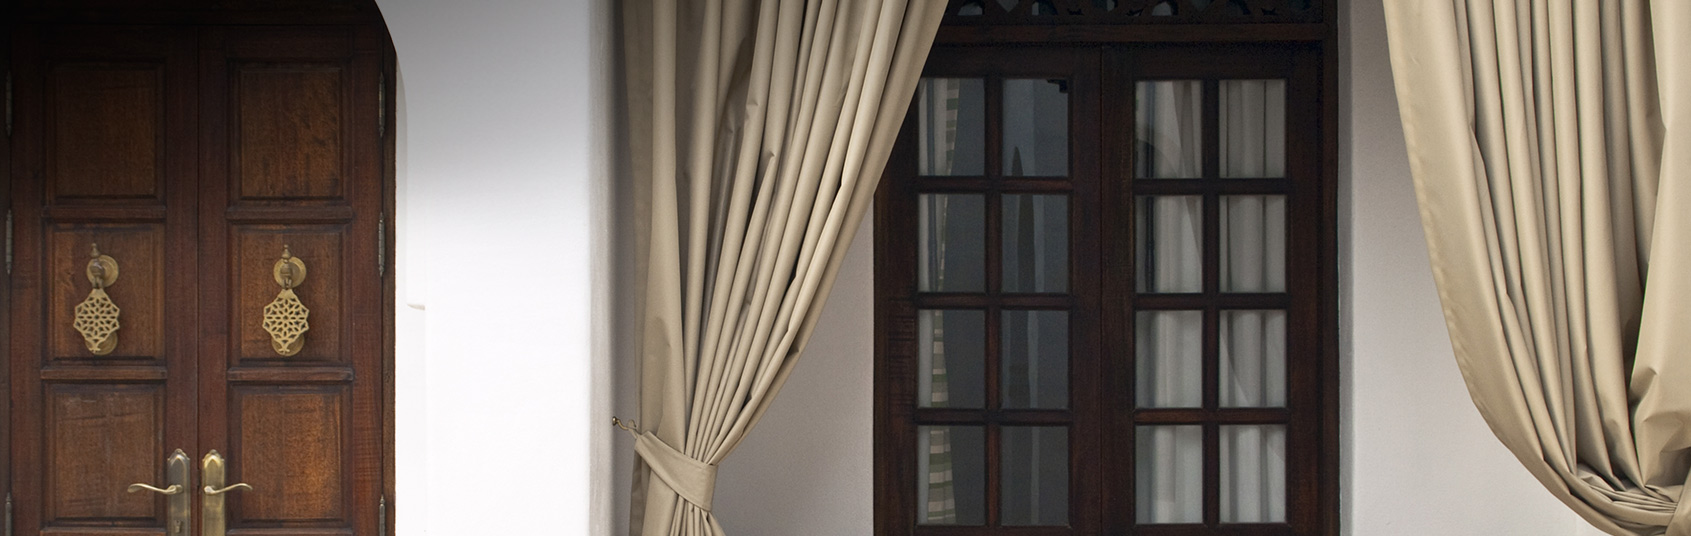 doors how for ideas and these beautiful patio outdoor love ll curtains spaces you diy rooms windows to